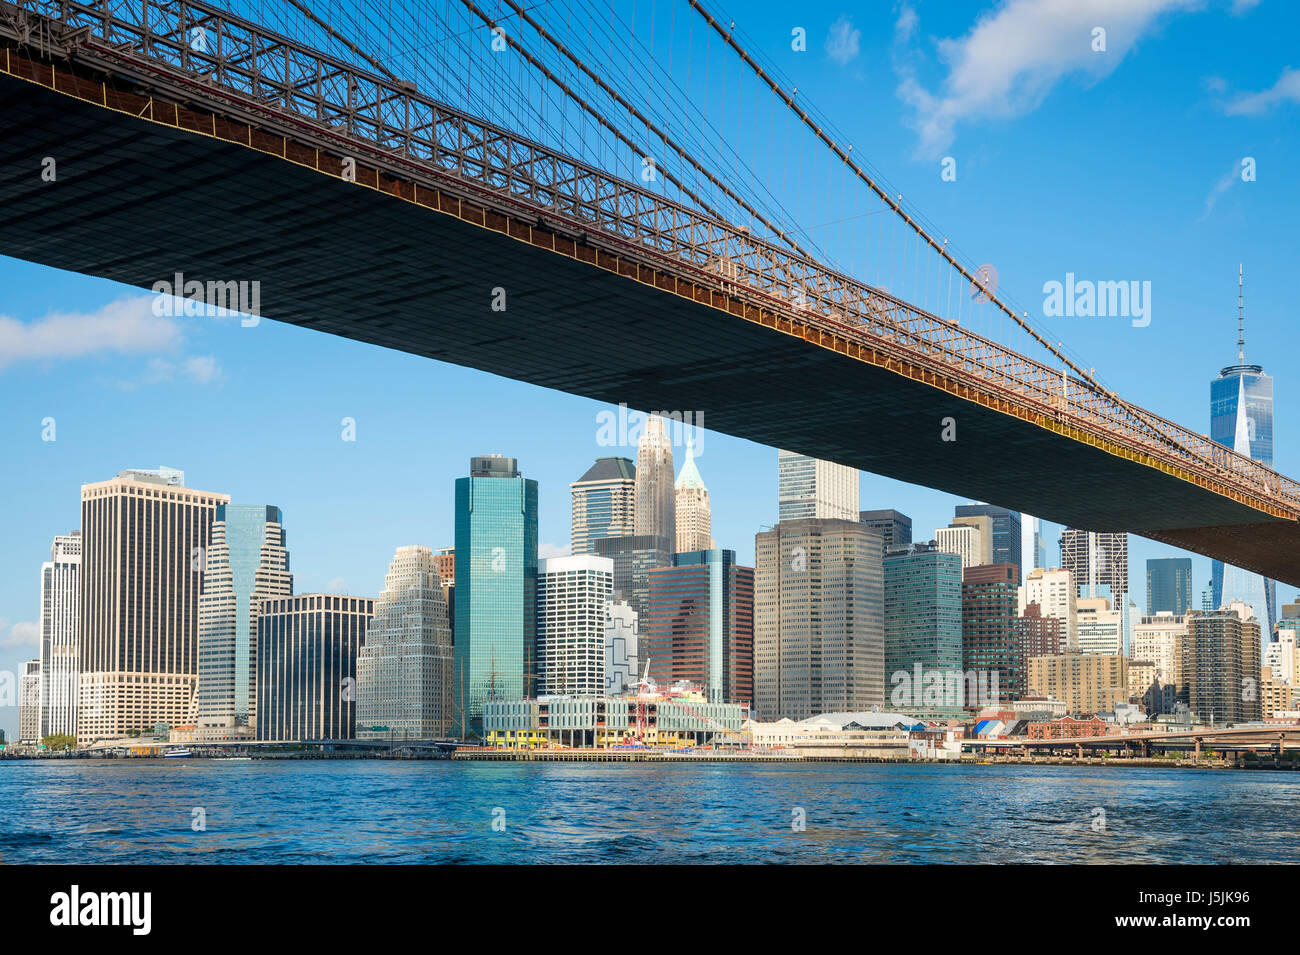 Bright scenic view of the Brooklyn Bridge with the Lower Manhattan skyline from the East River - Stock Image